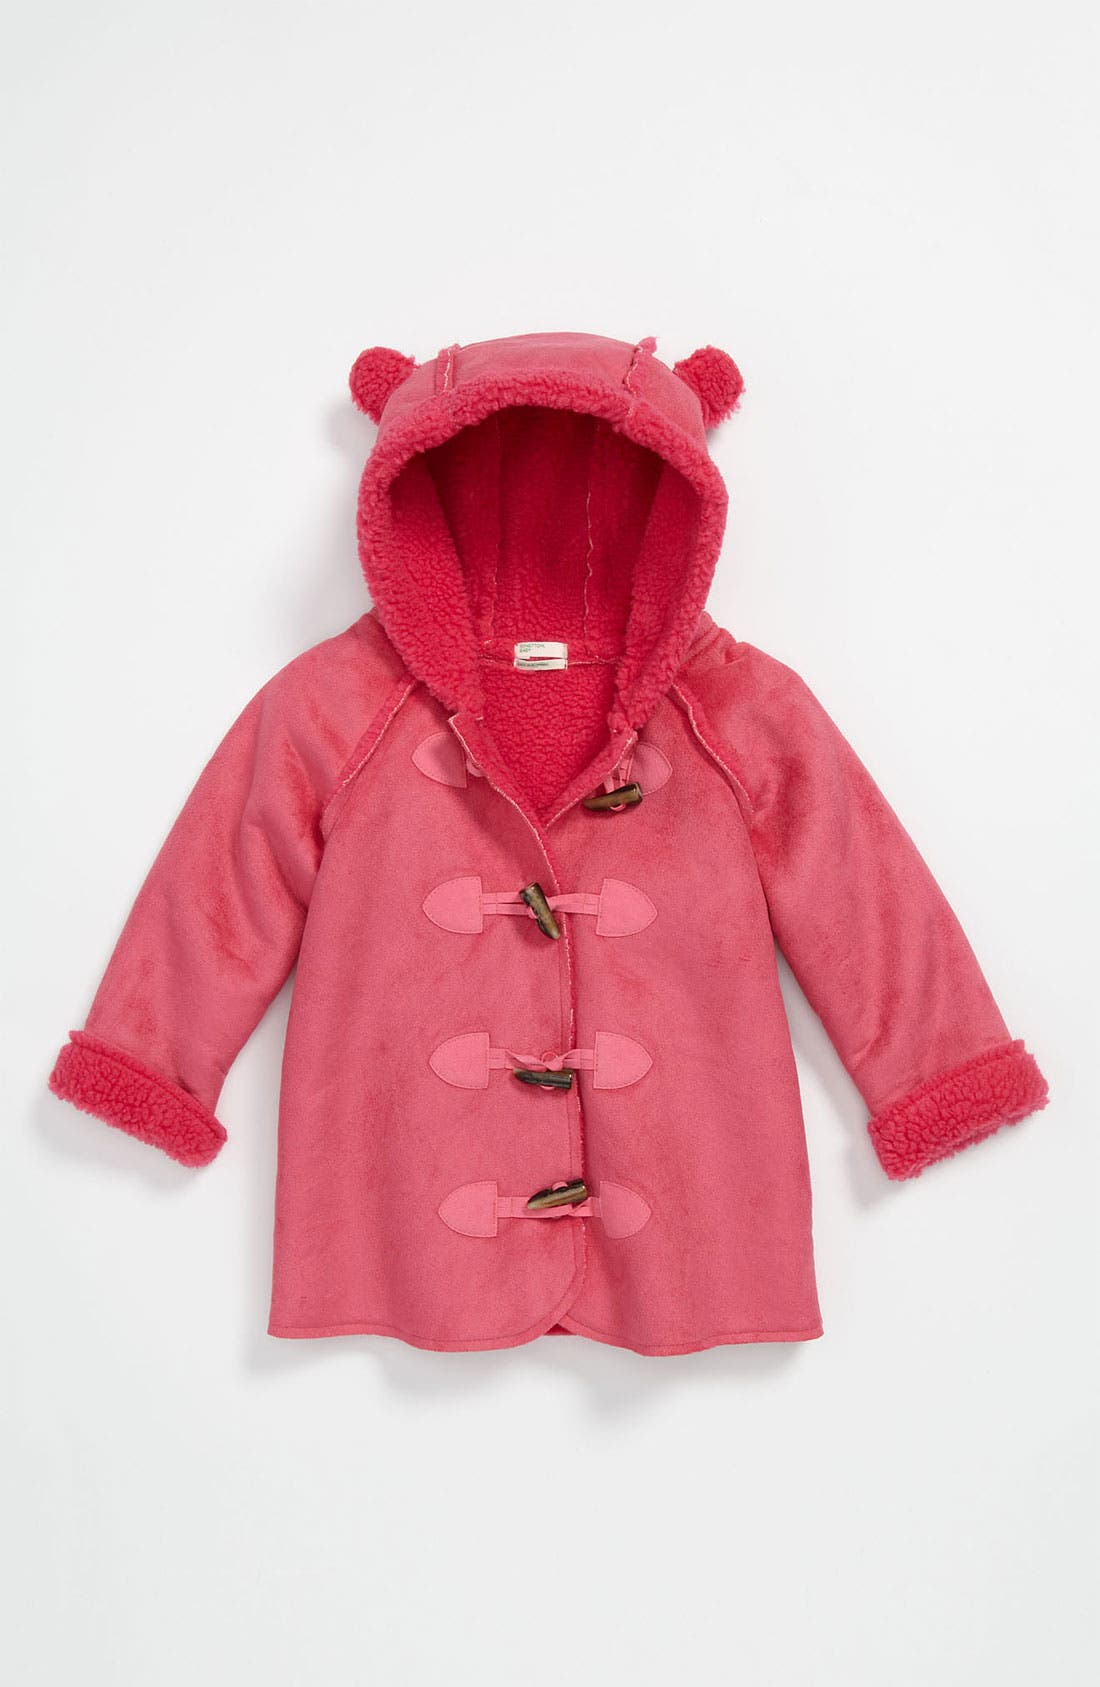 Alternate Image 1 Selected - United Colors of Benetton Kids Jacket (Infant)